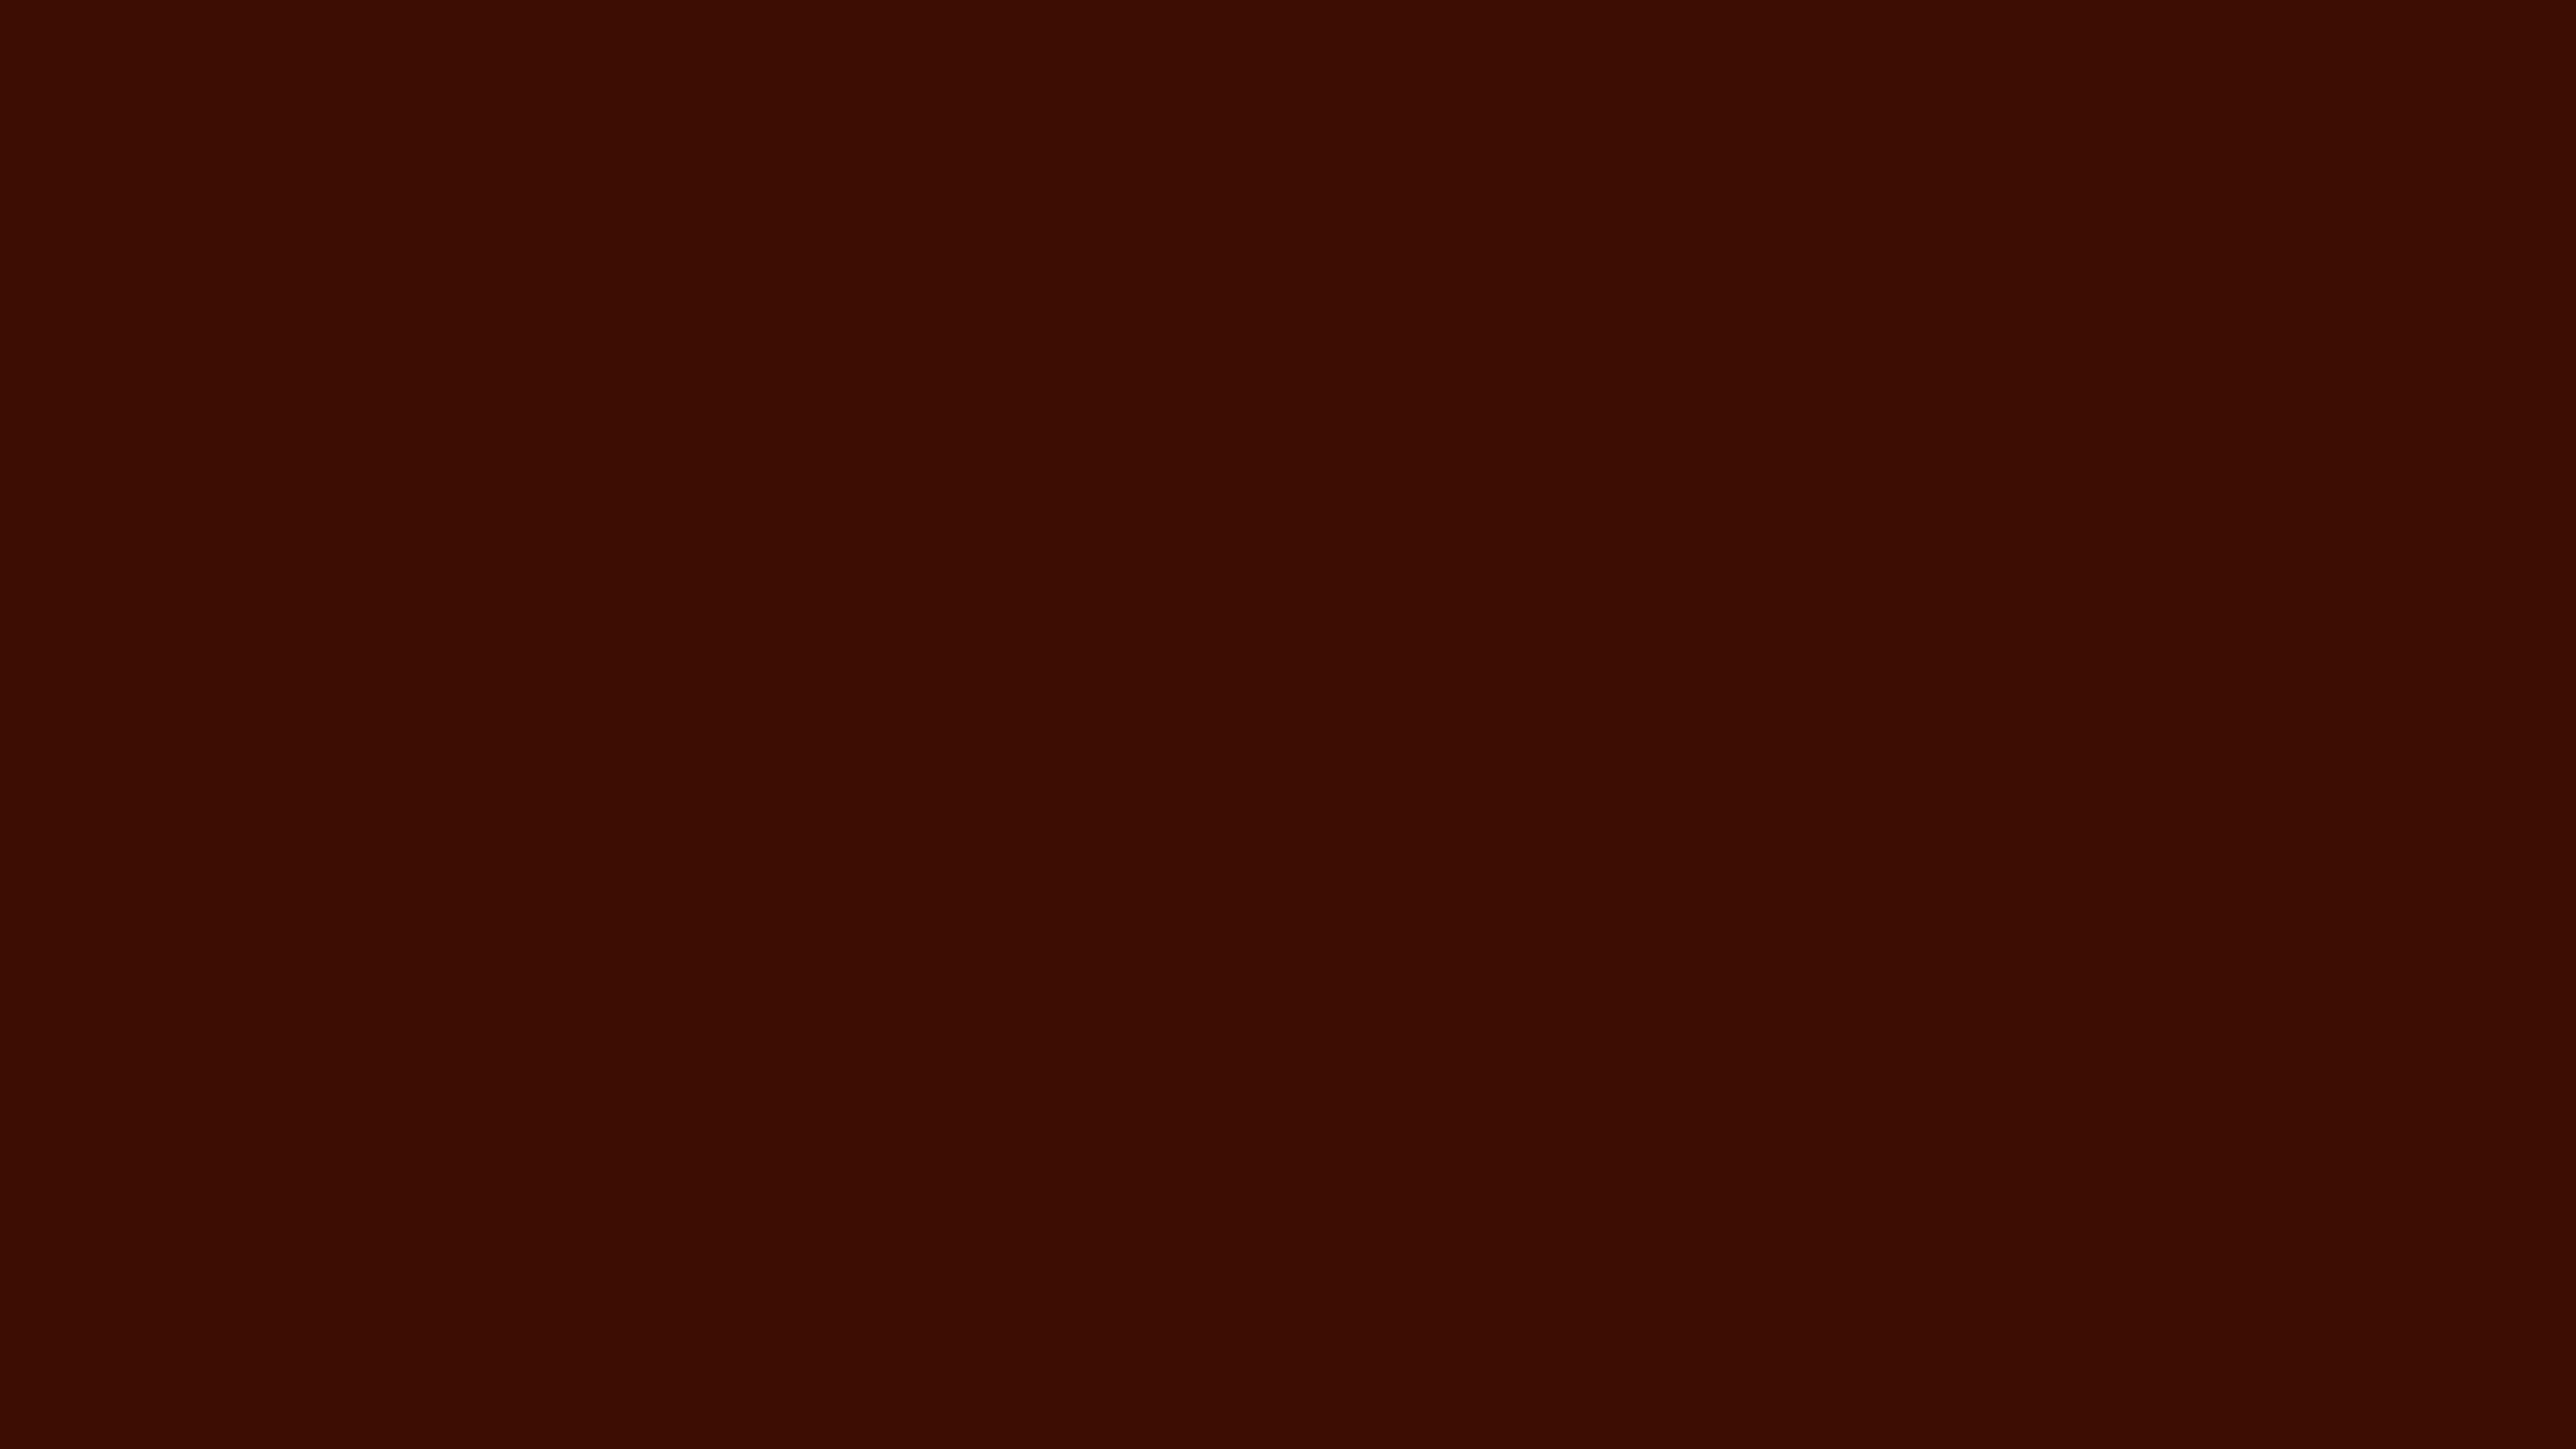 5120x2880 Black Bean Solid Color Background